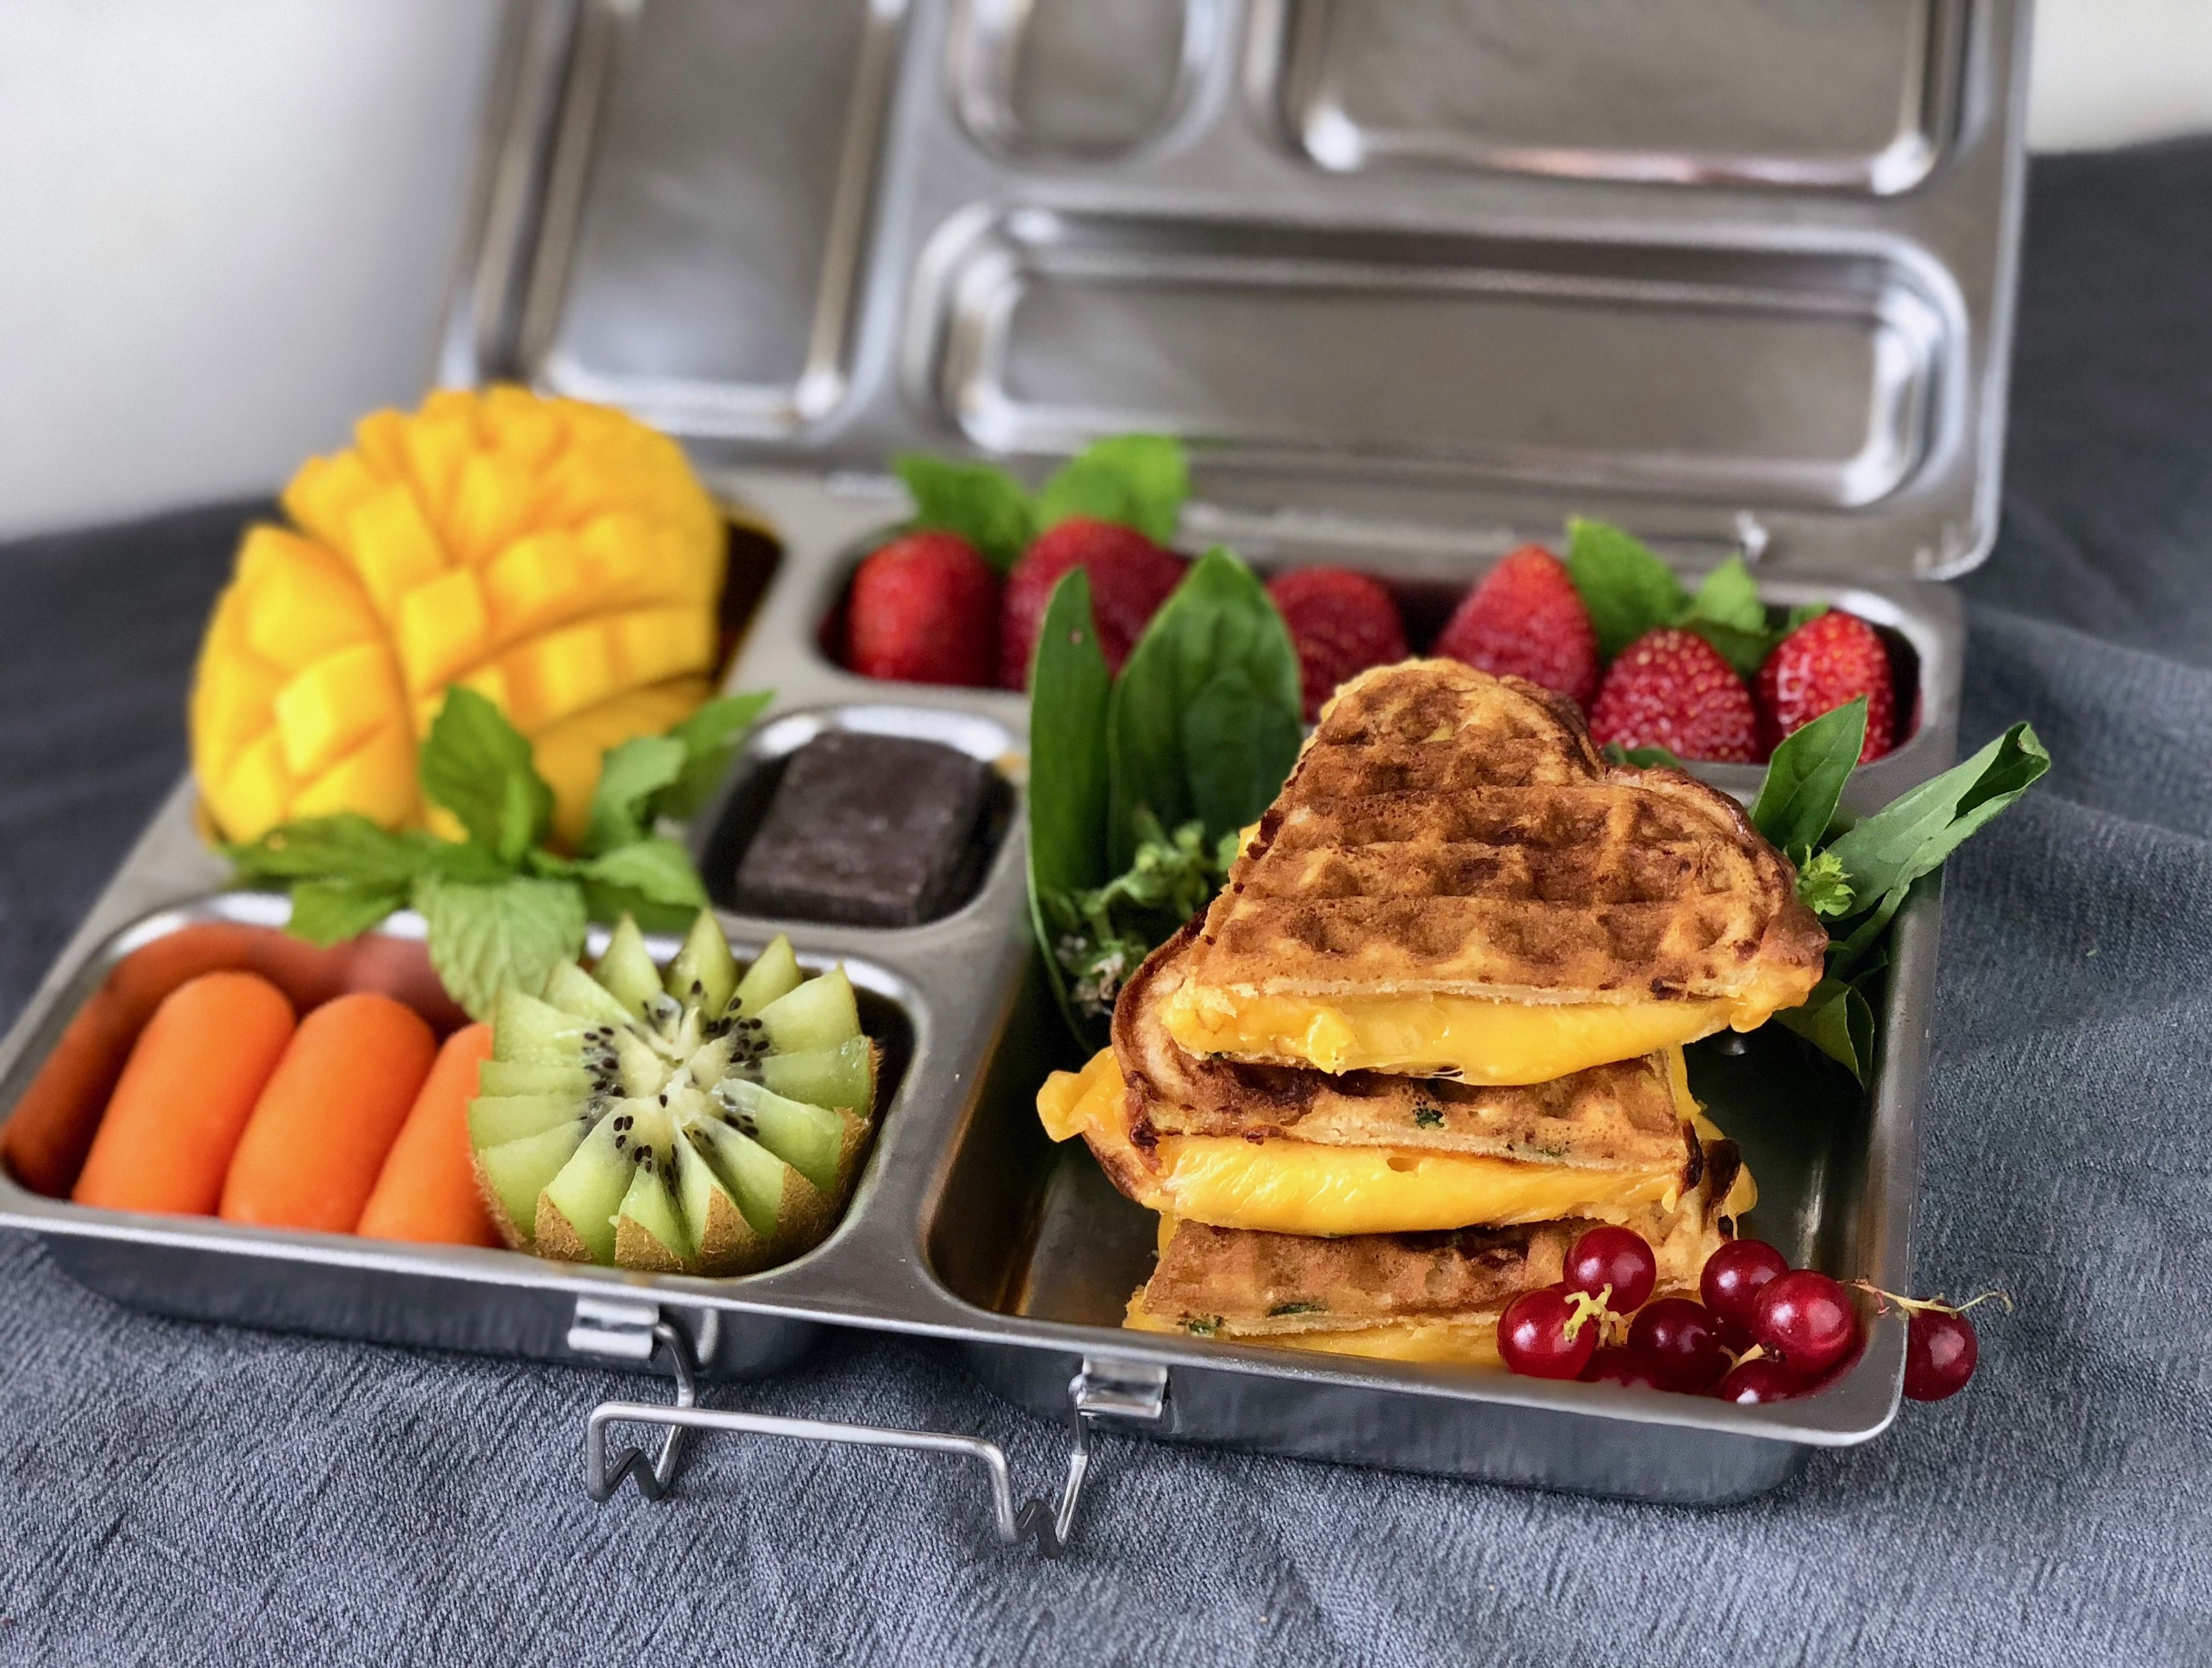 Savory Waffle and Deli American Sandwiches